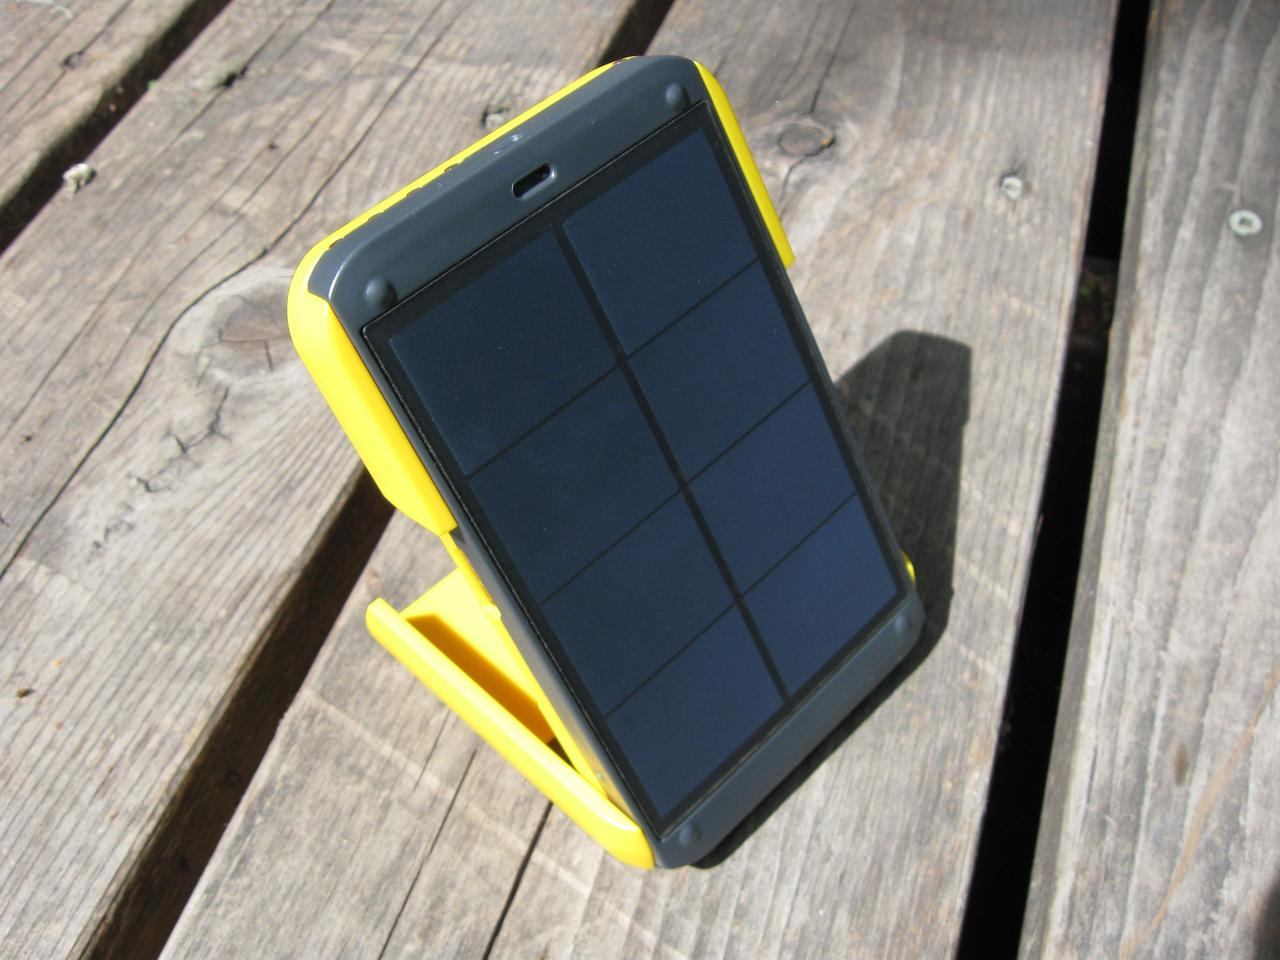 The Waka Waka Power's Sunpower solar cell has an efficiency rating of 22 percent